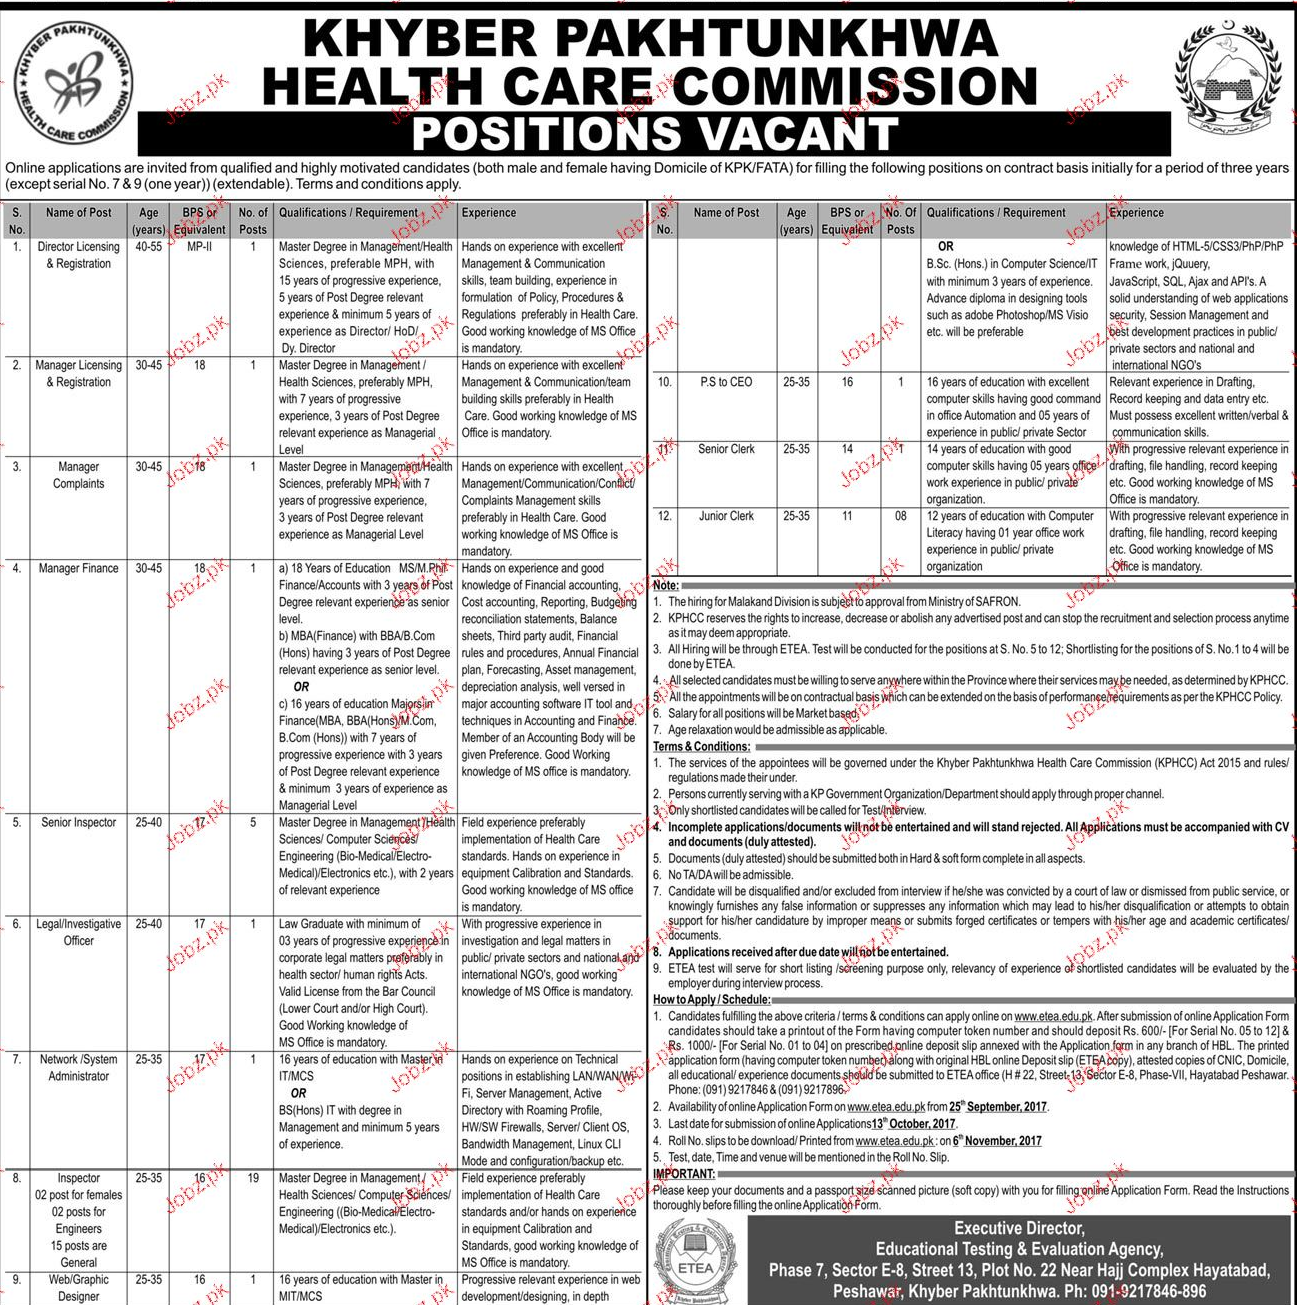 Khyber Pakhtunkhwa Health Care Commission Jobs 2017